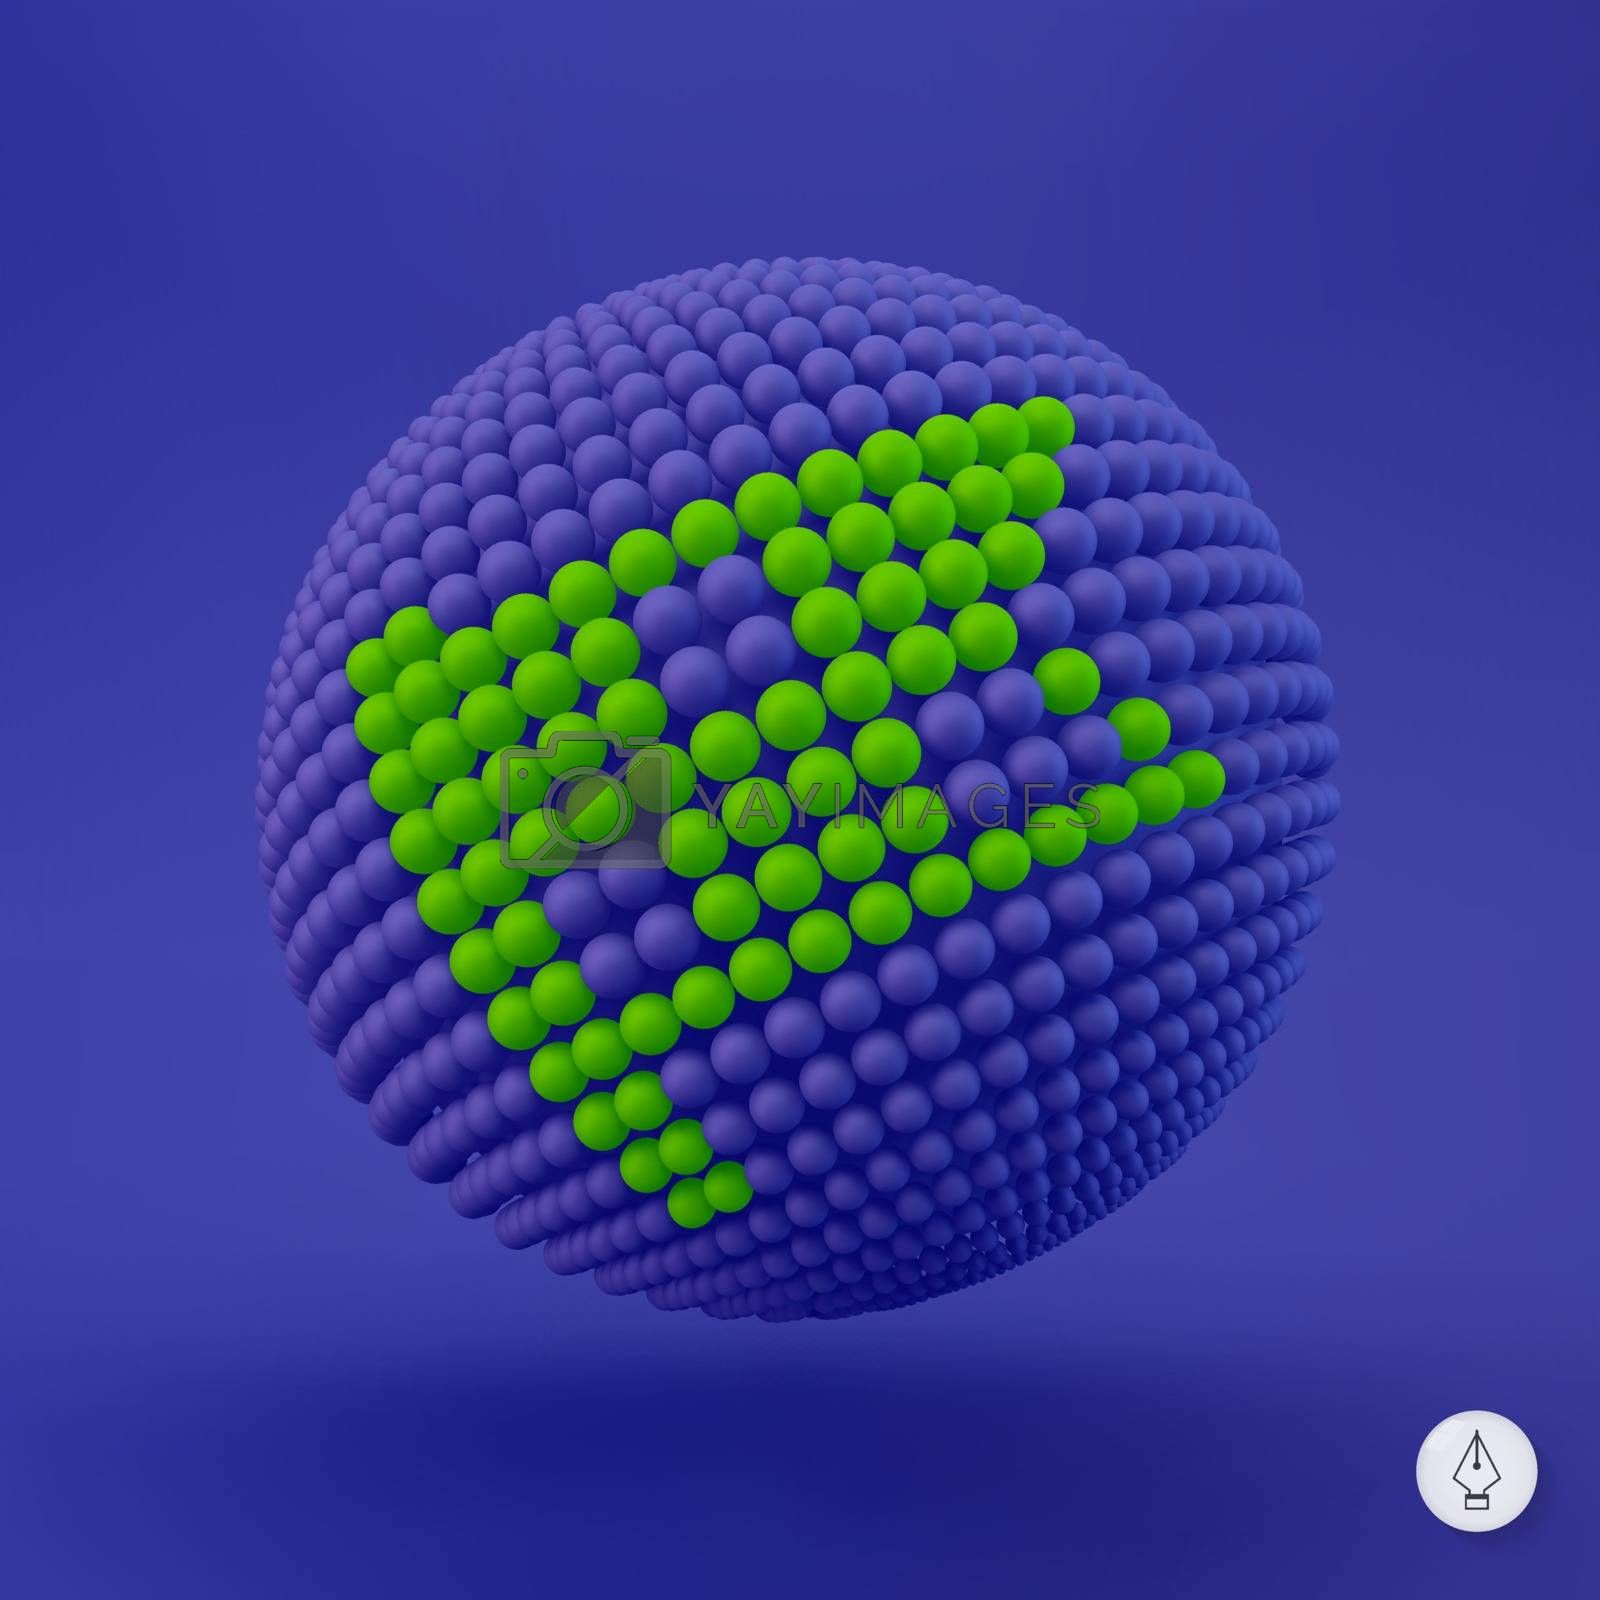 Flag icon. Can be used as web sign, design element. Vector illustration. 3D pixel art.